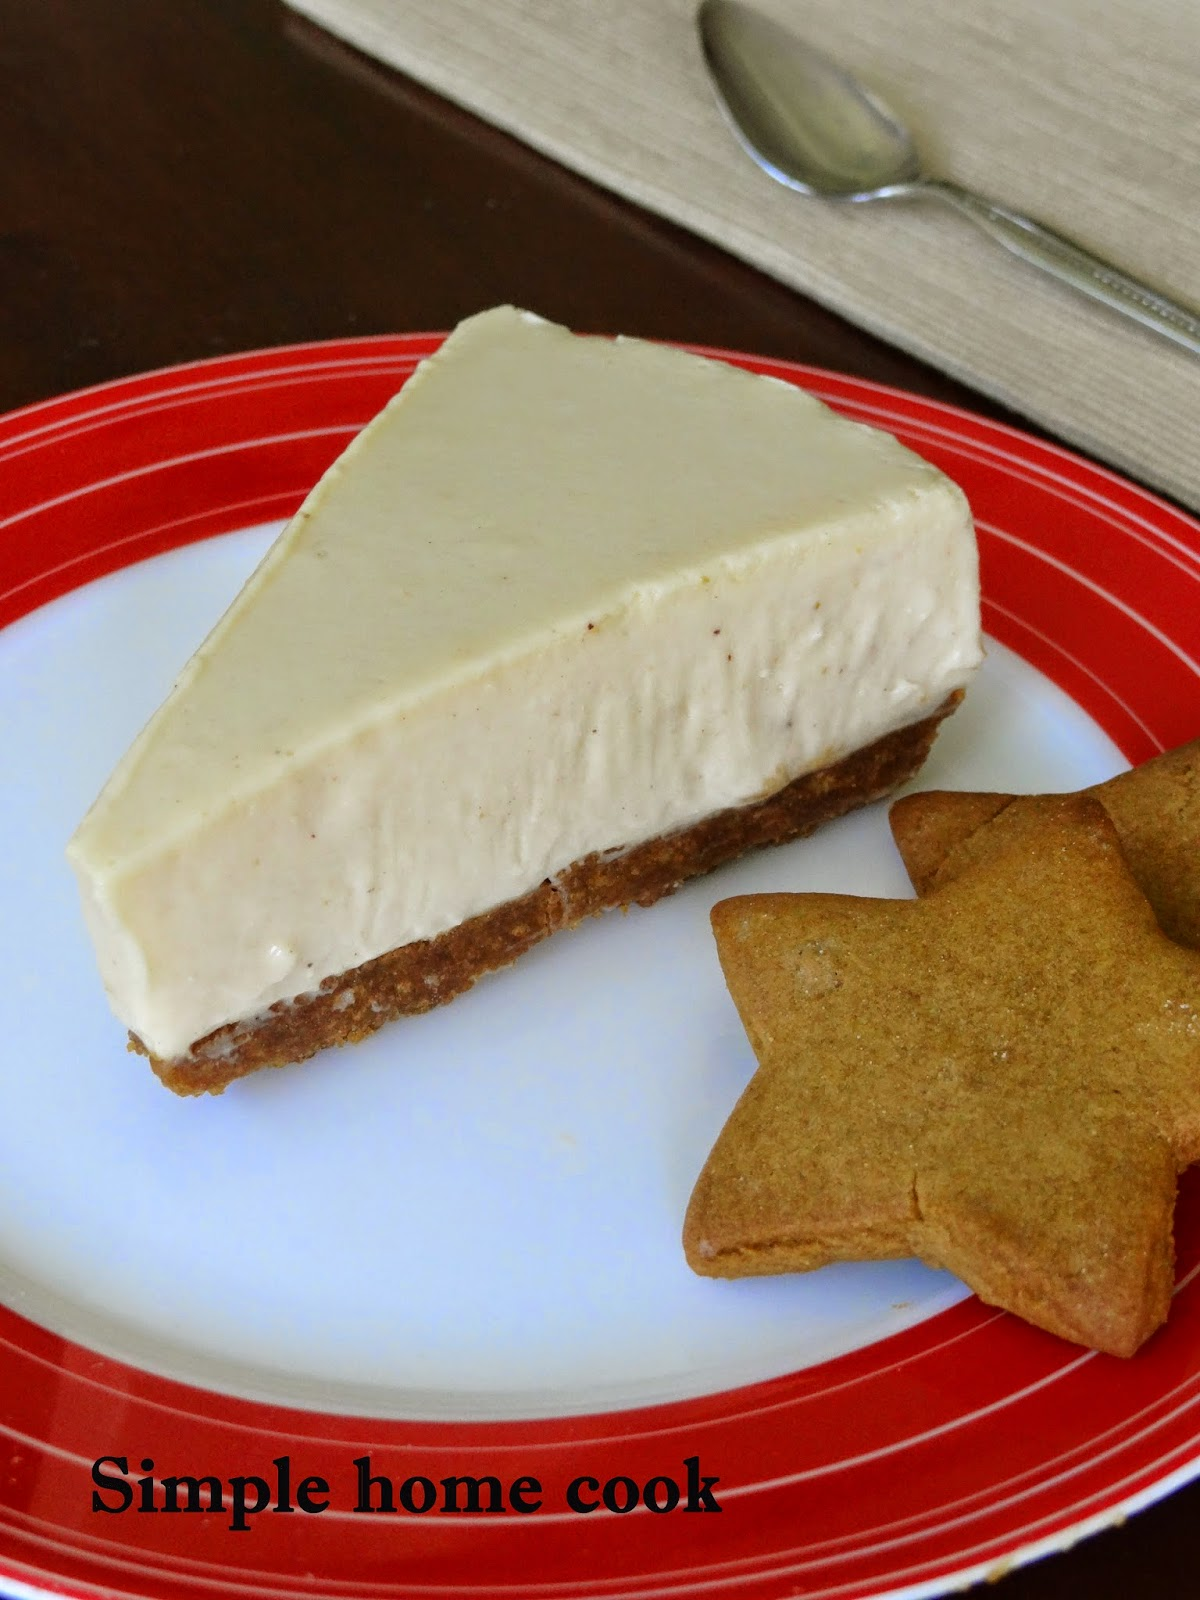 Simple home cook: Gingerbread cheesecake